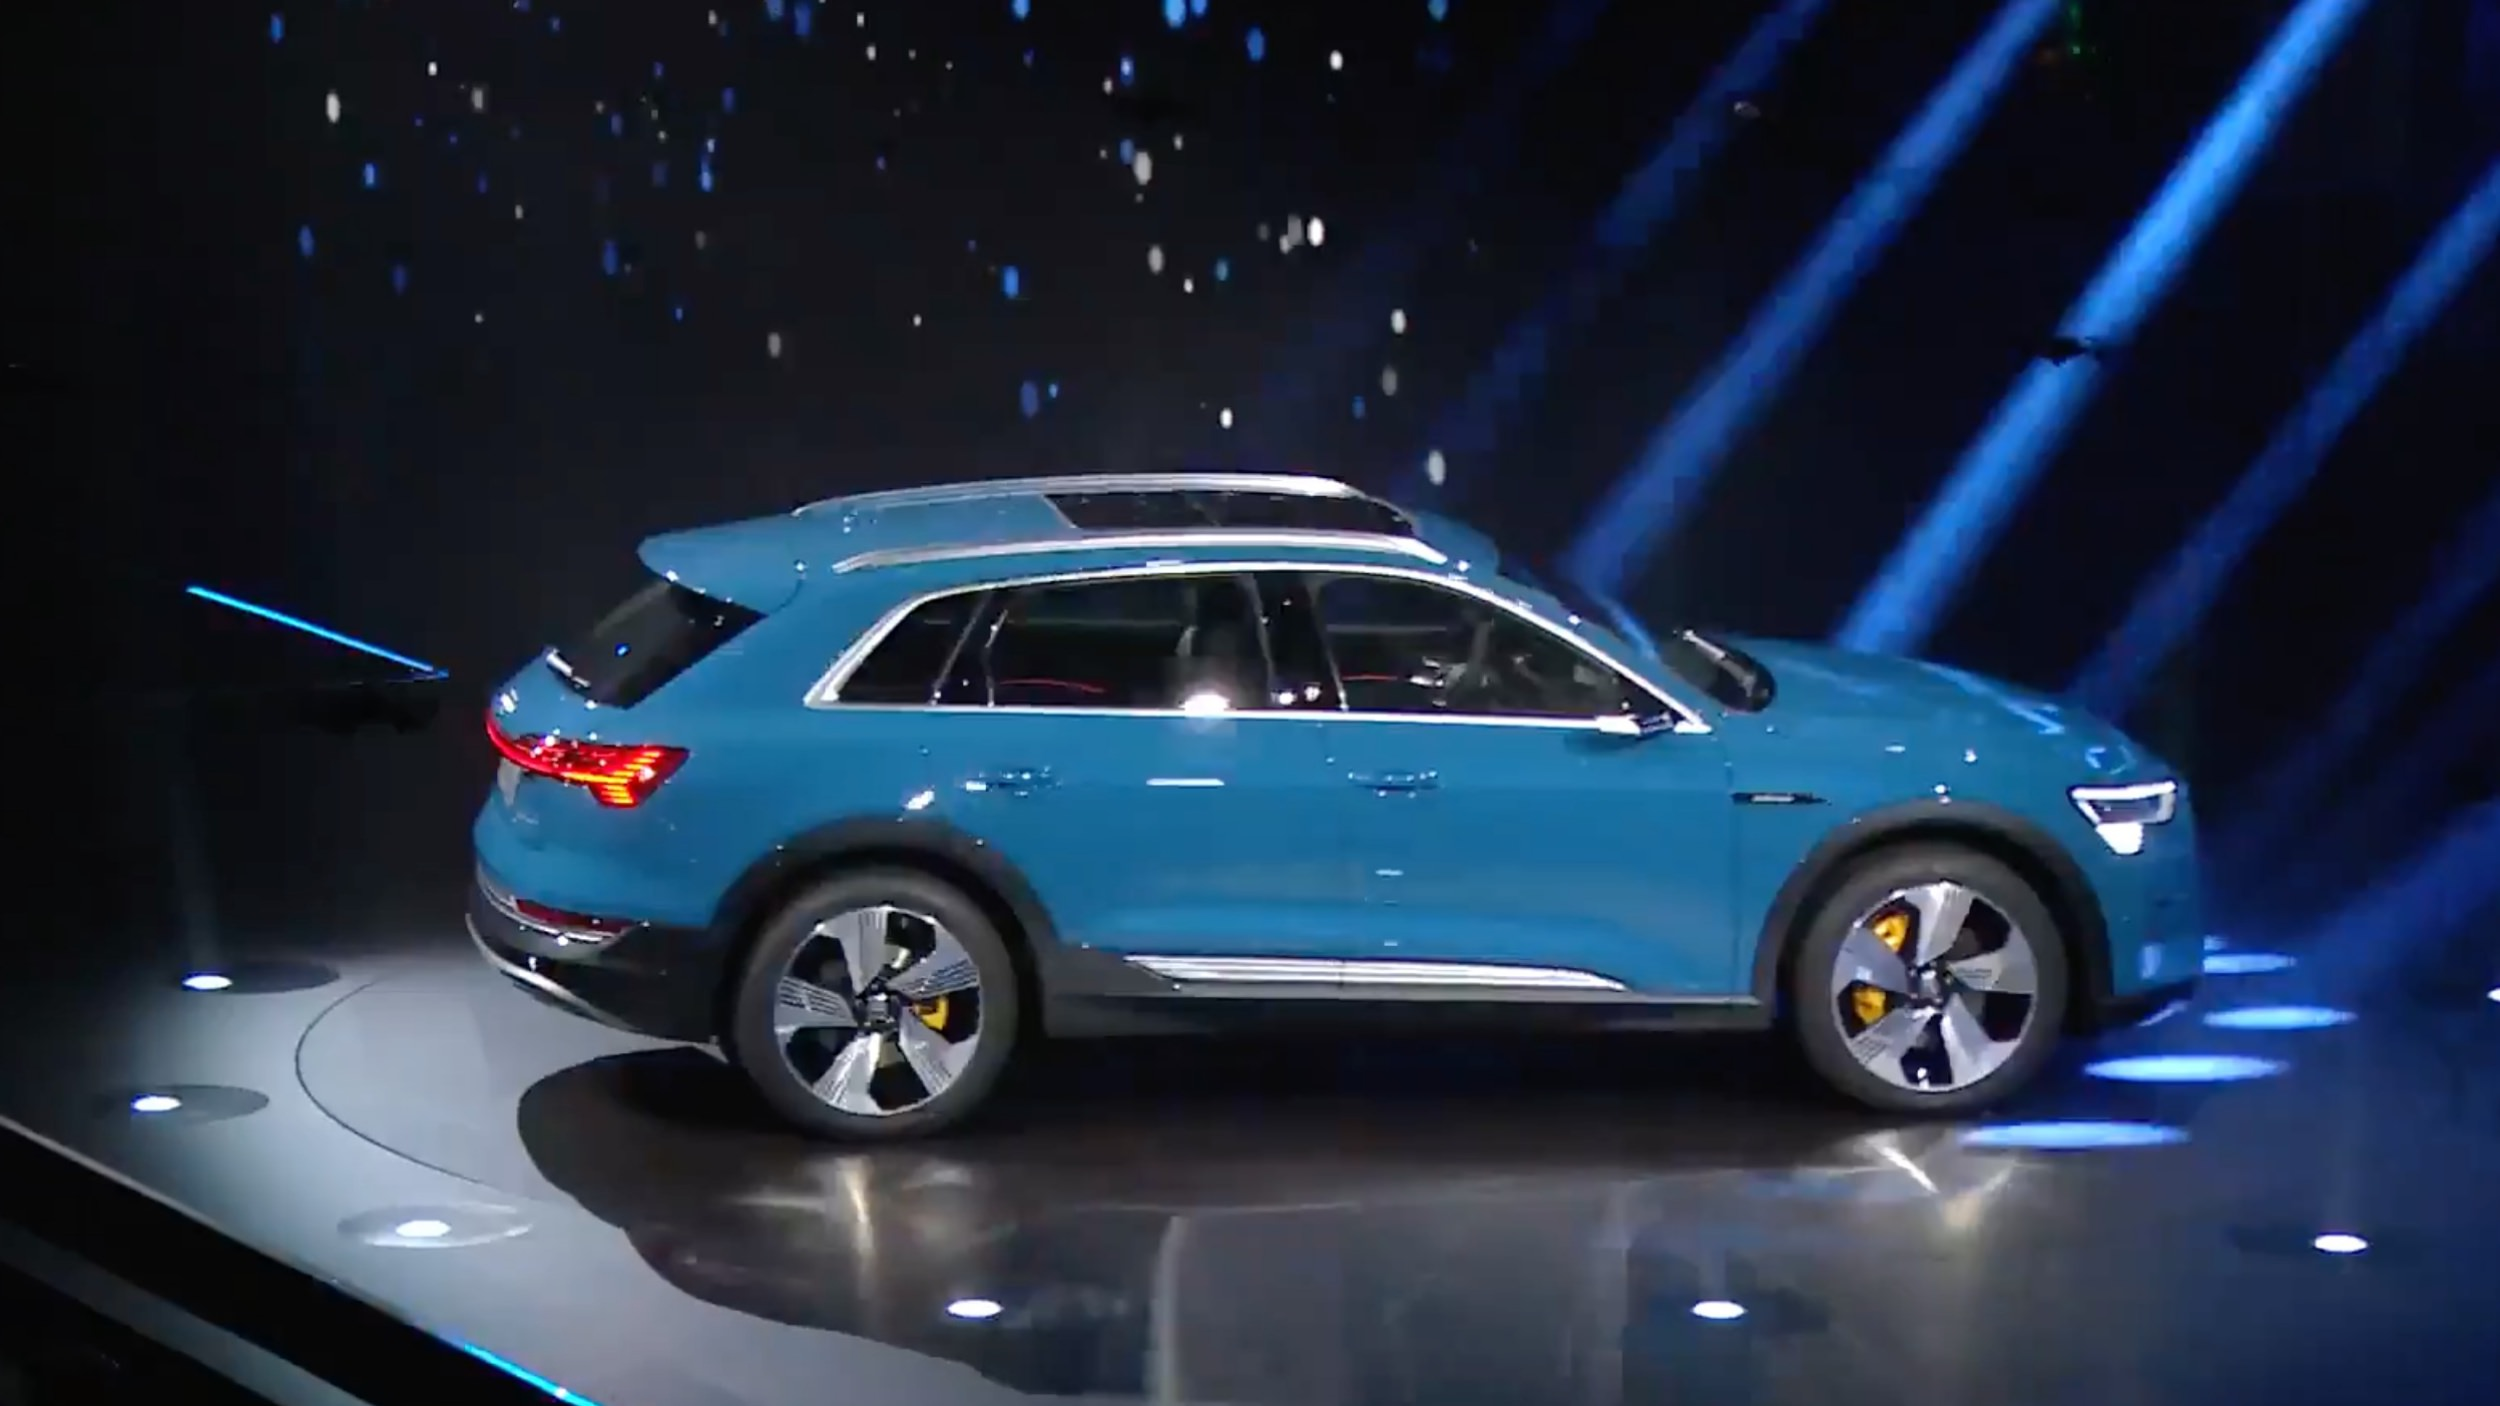 Audi launches e-tron electric SUV with $74,800 starting price